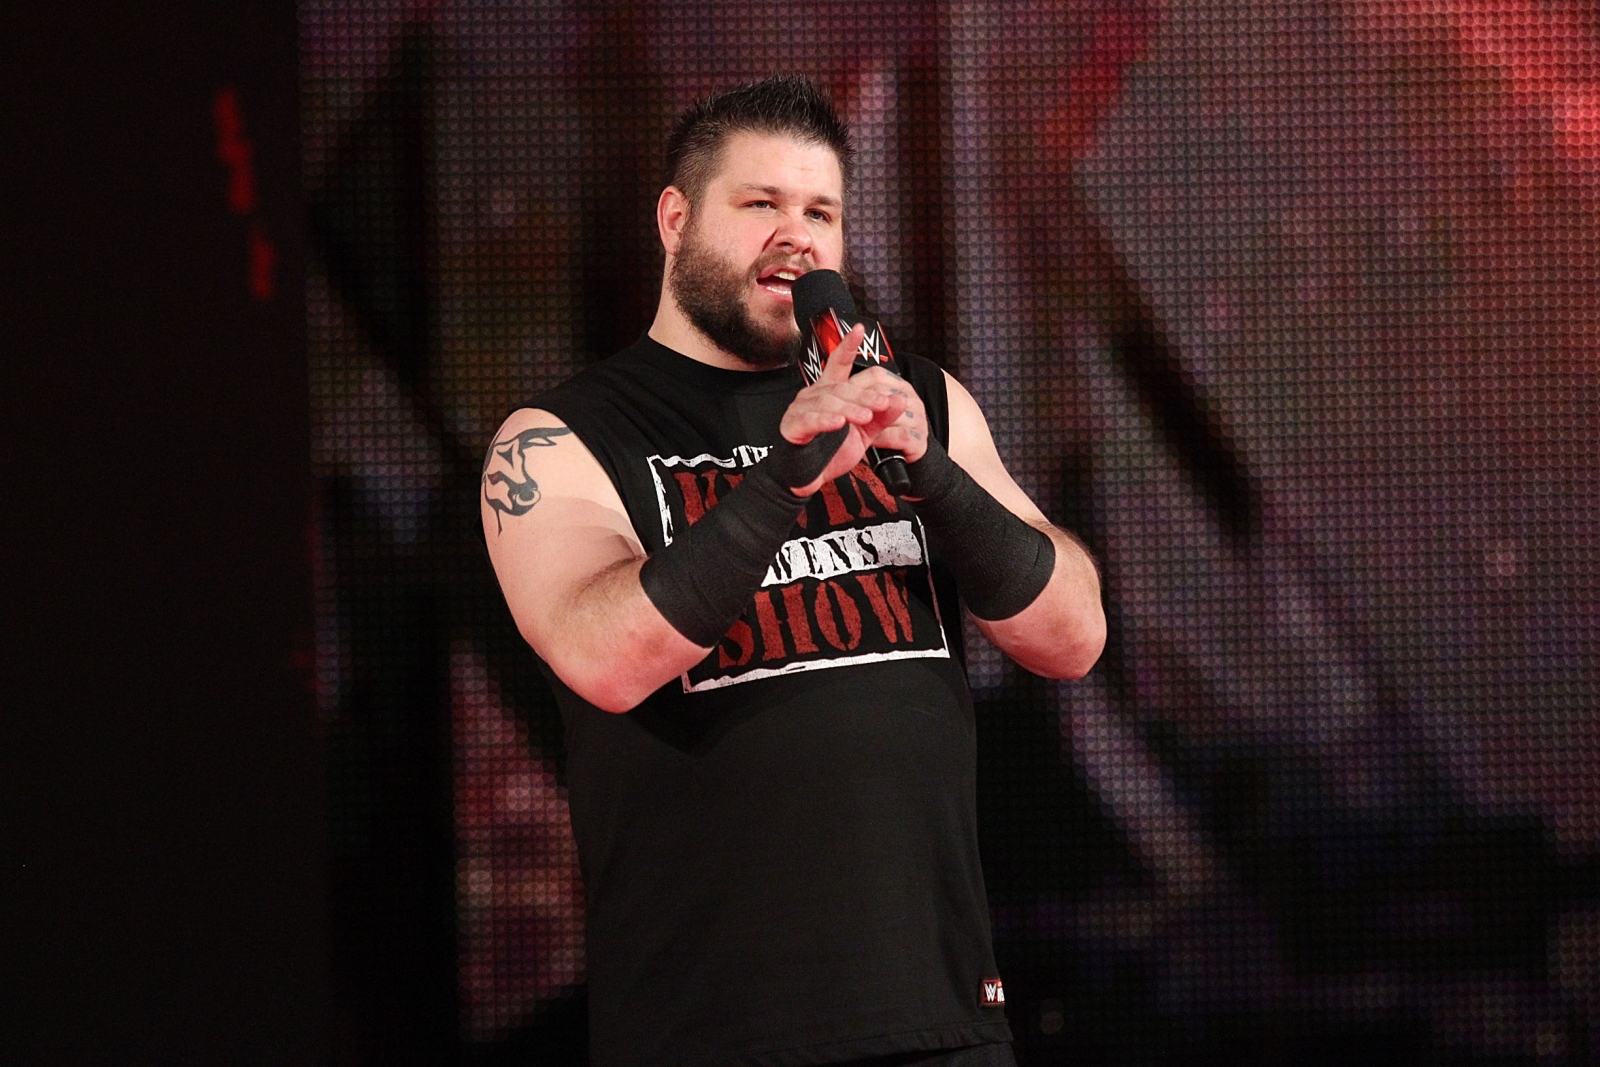 Wwe Why Does Vince Mcmahon Want Kevin Owens To Work In A